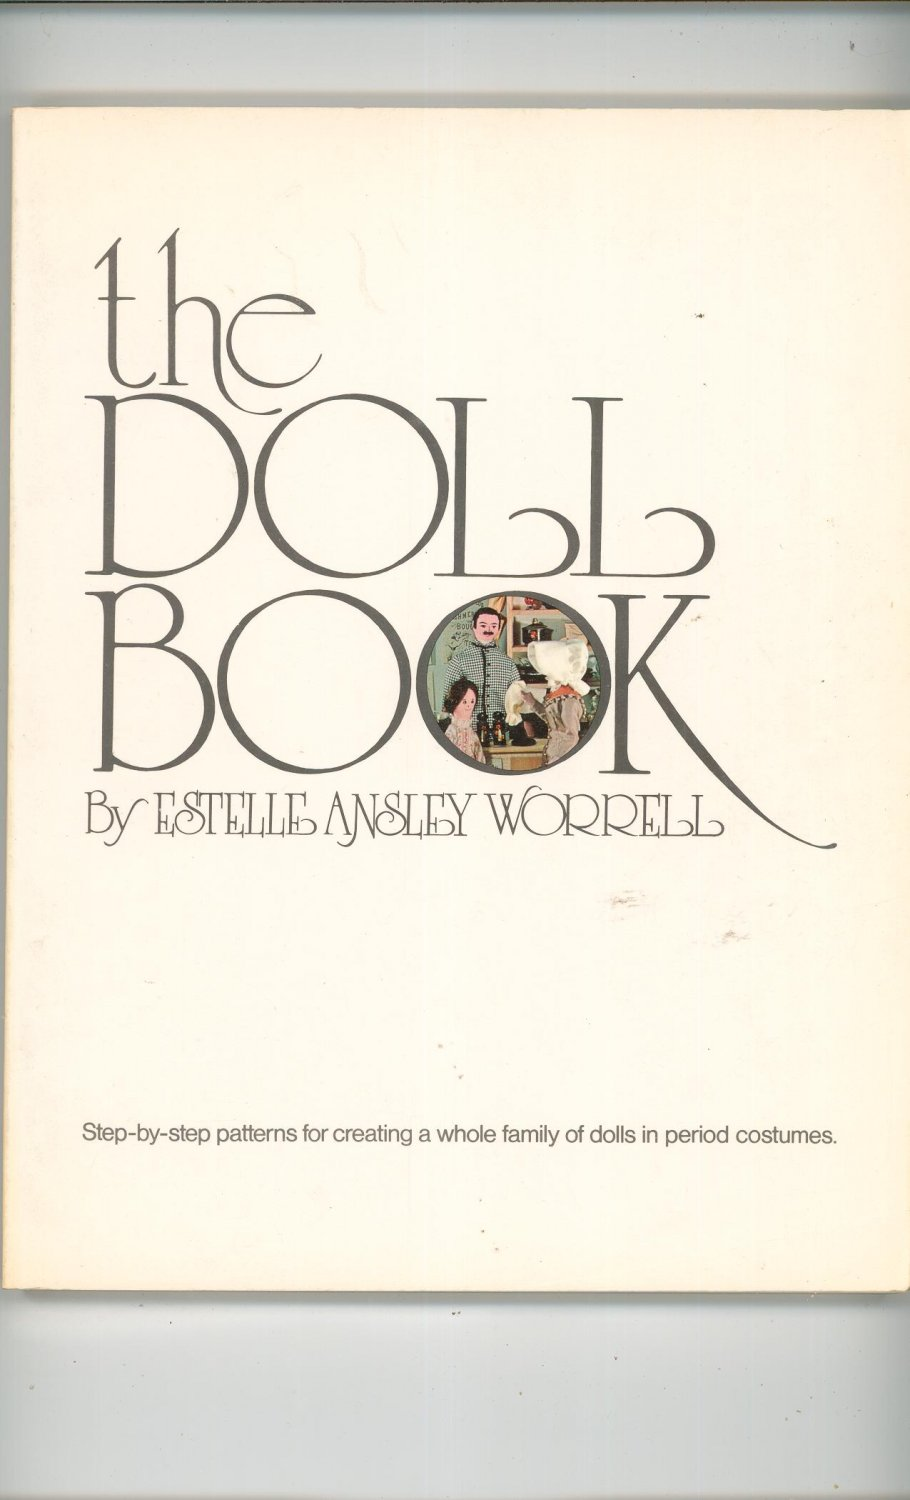 The Doll Book By Estelle Worrell 0442295553 Pattern